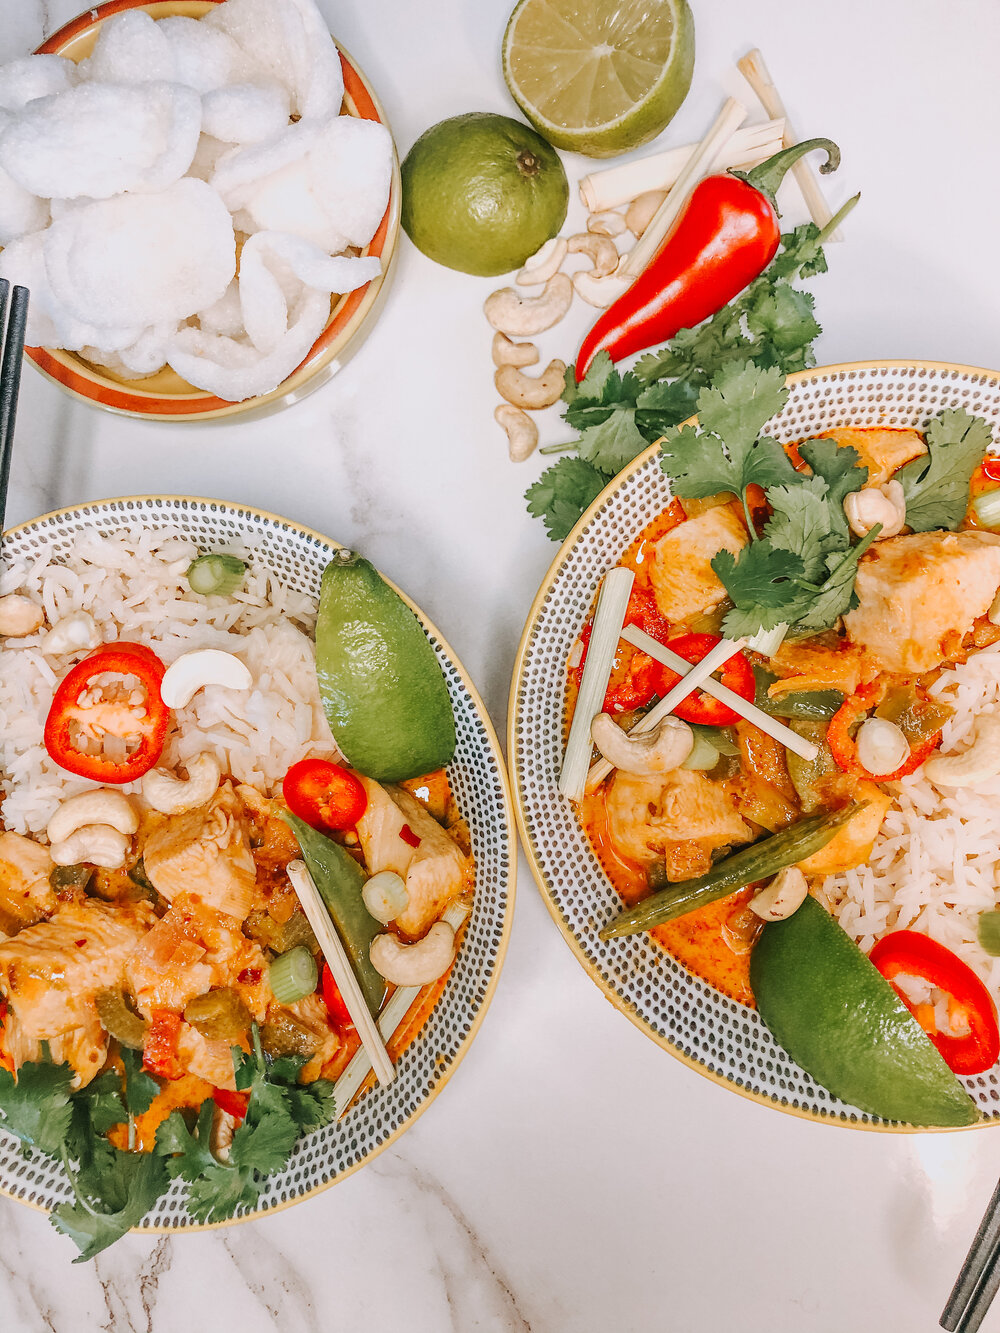 The most delicious red Thai curry!